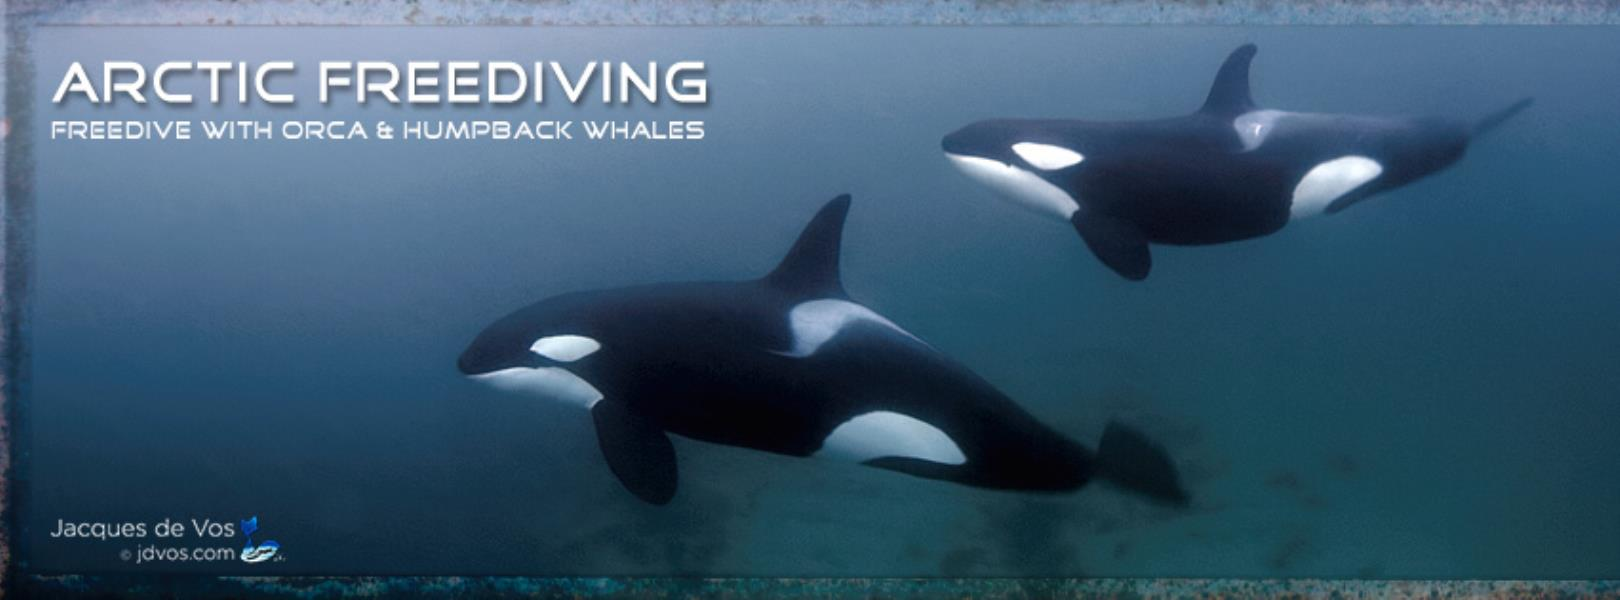 Freedive With Orca & Humpback Whales